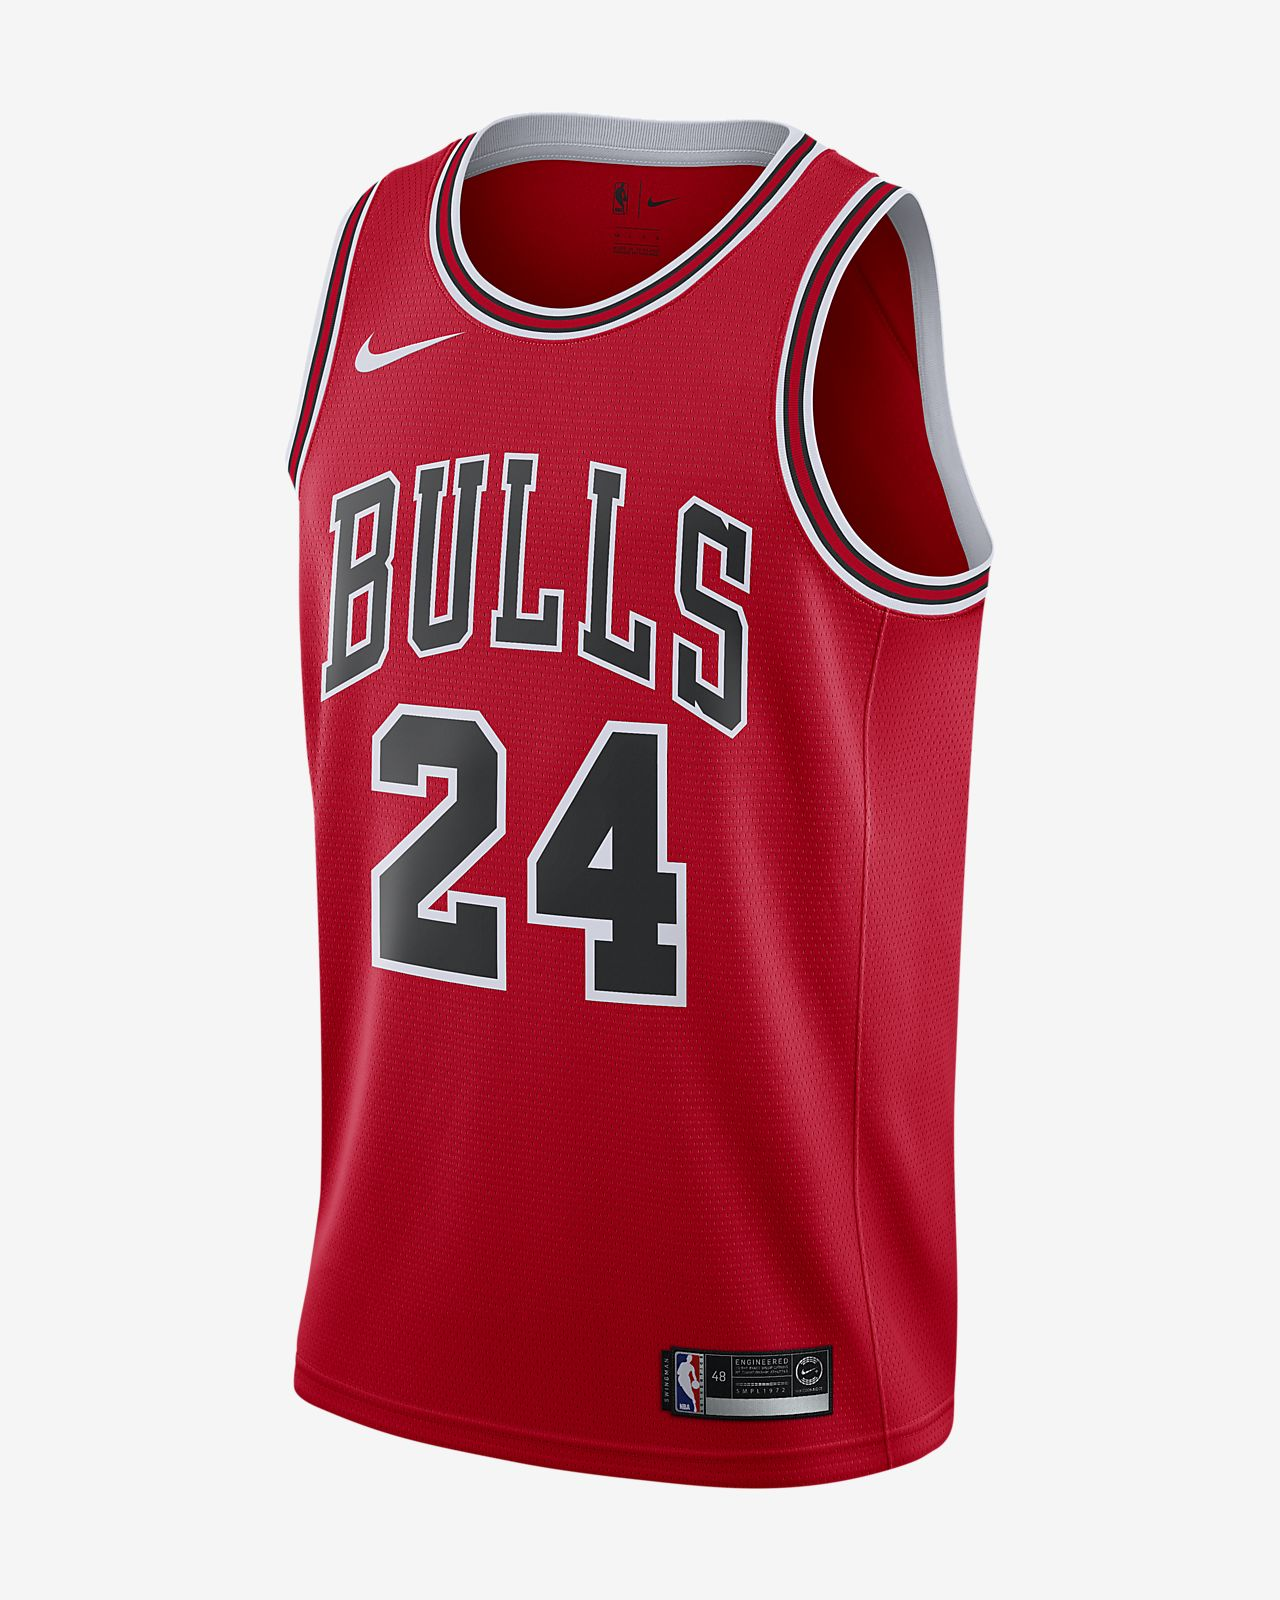 Ανδρική συνδεδεμένη φανέλα Nike NBA Lauri Markkanen Icon Edition Swingman (Chicago Bulls)